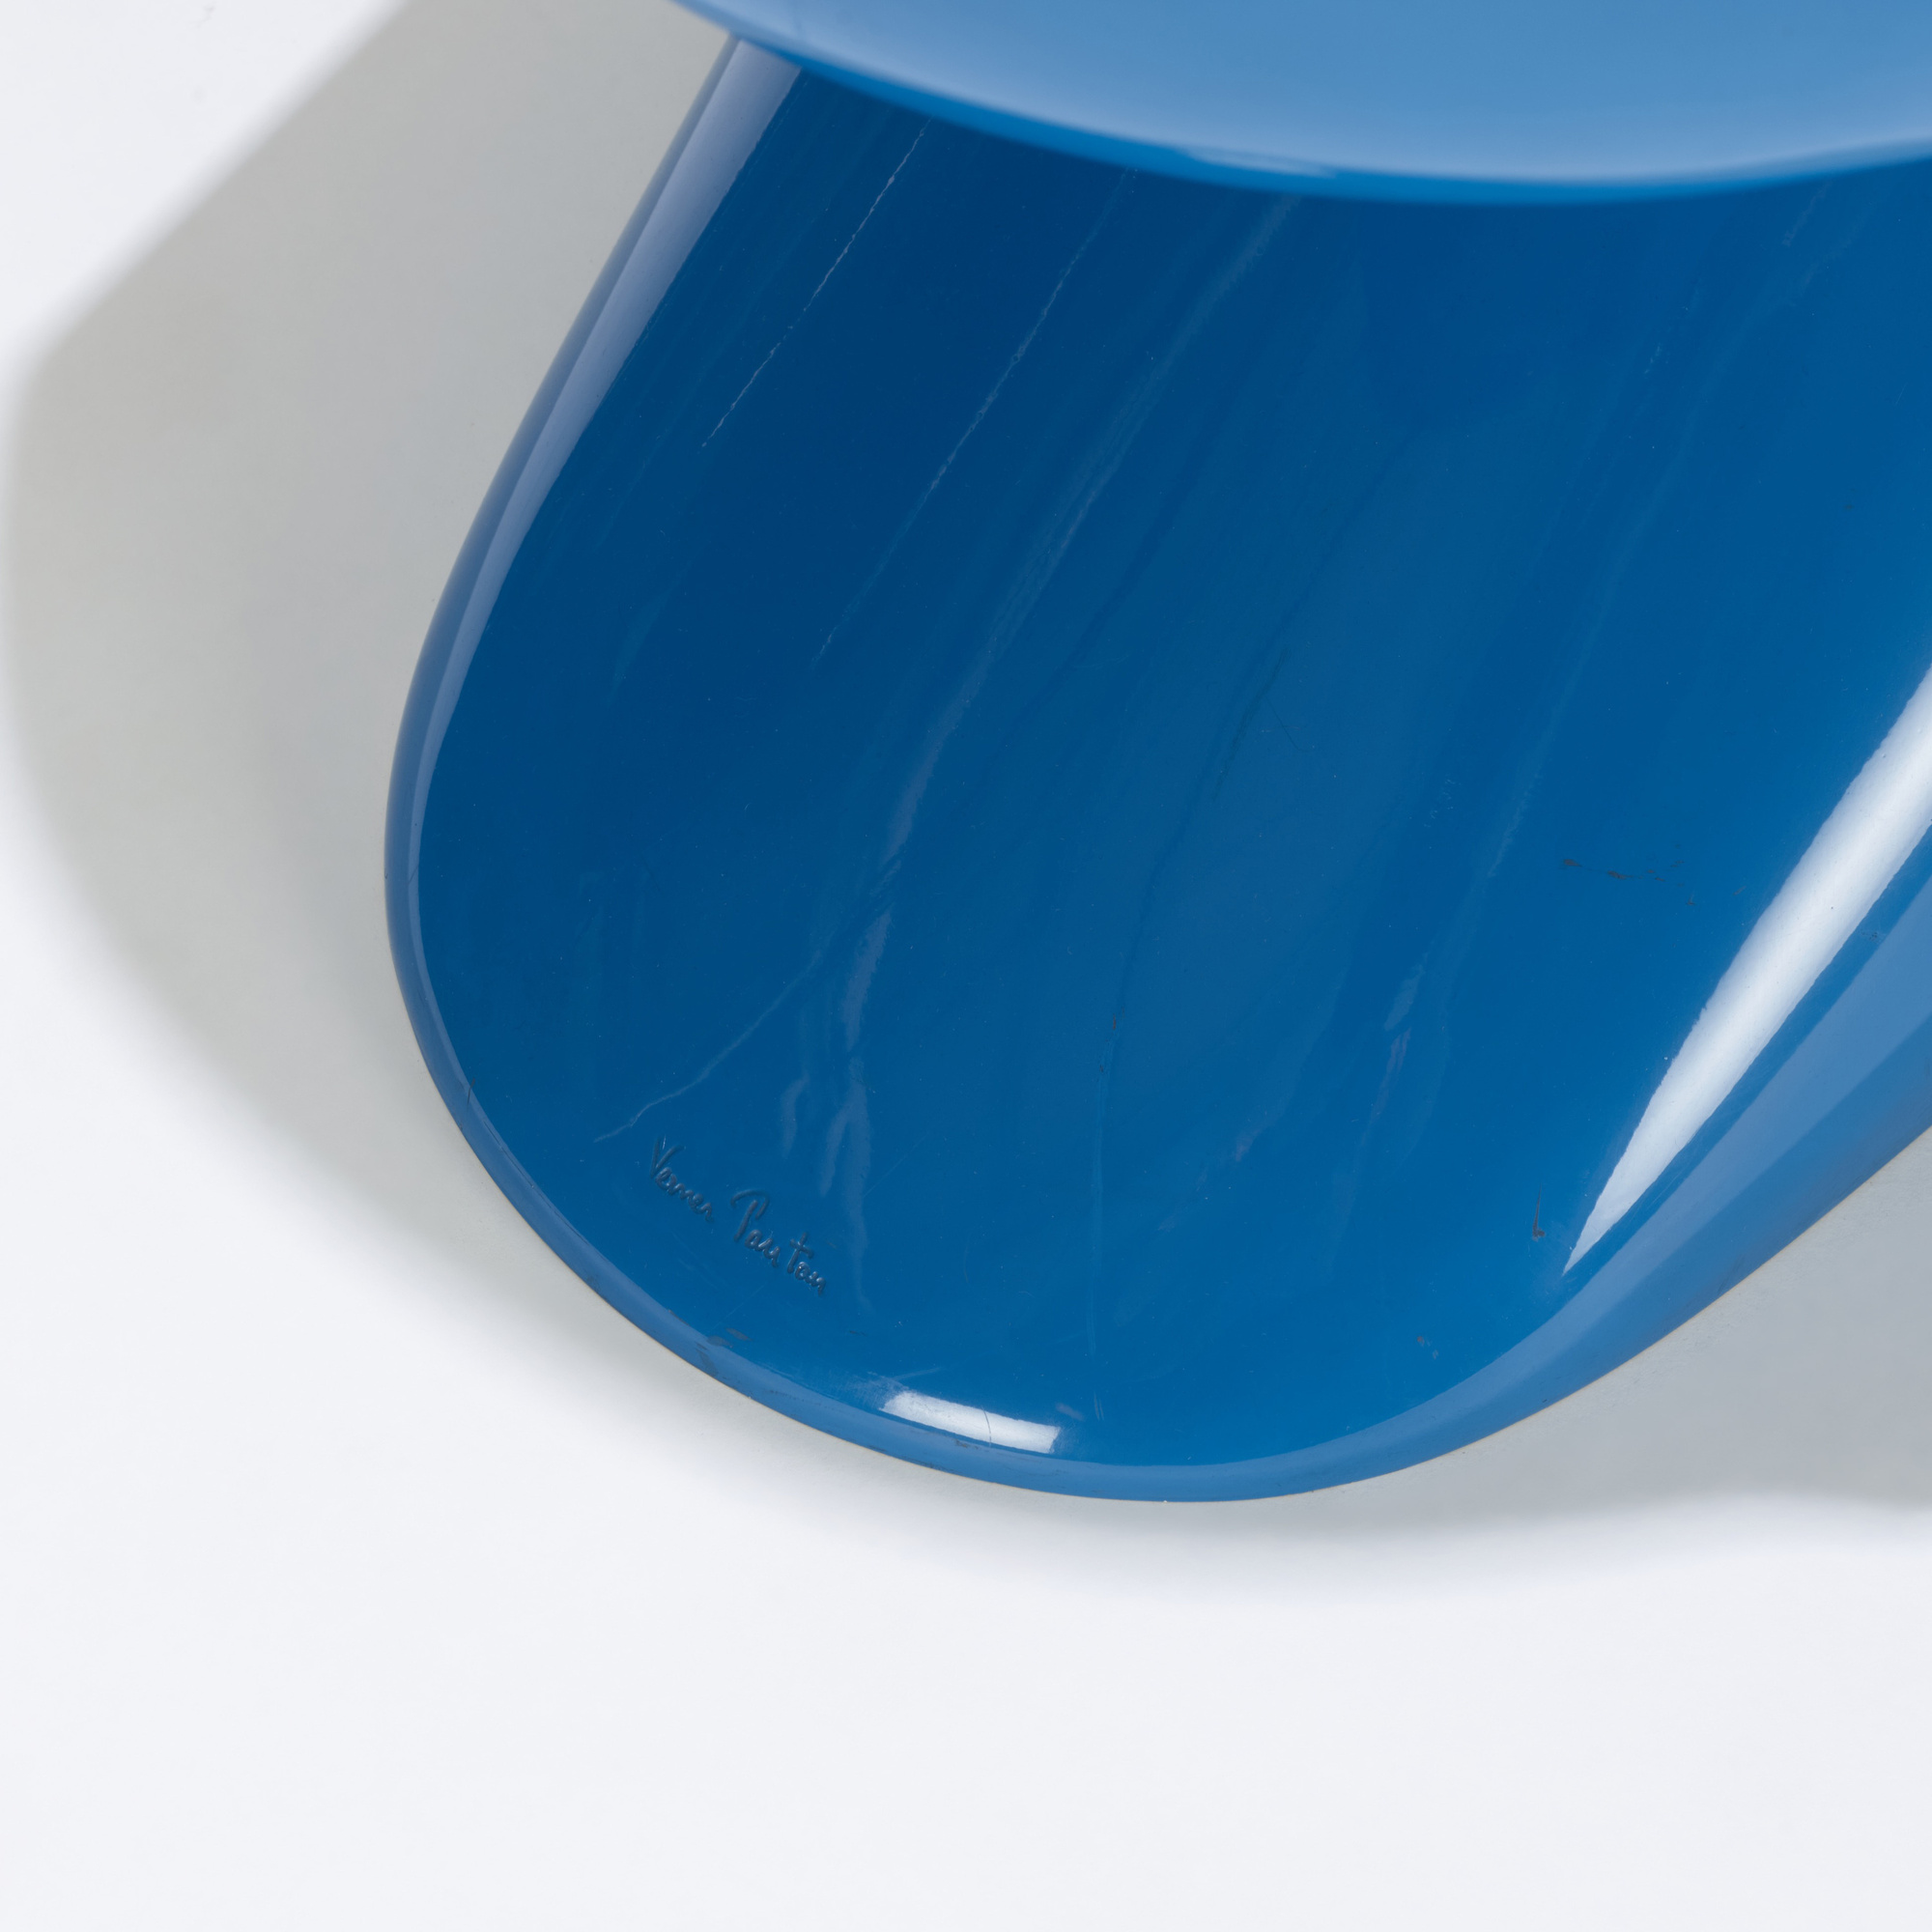 170: Verner Panton / Panton chair (3 of 3)